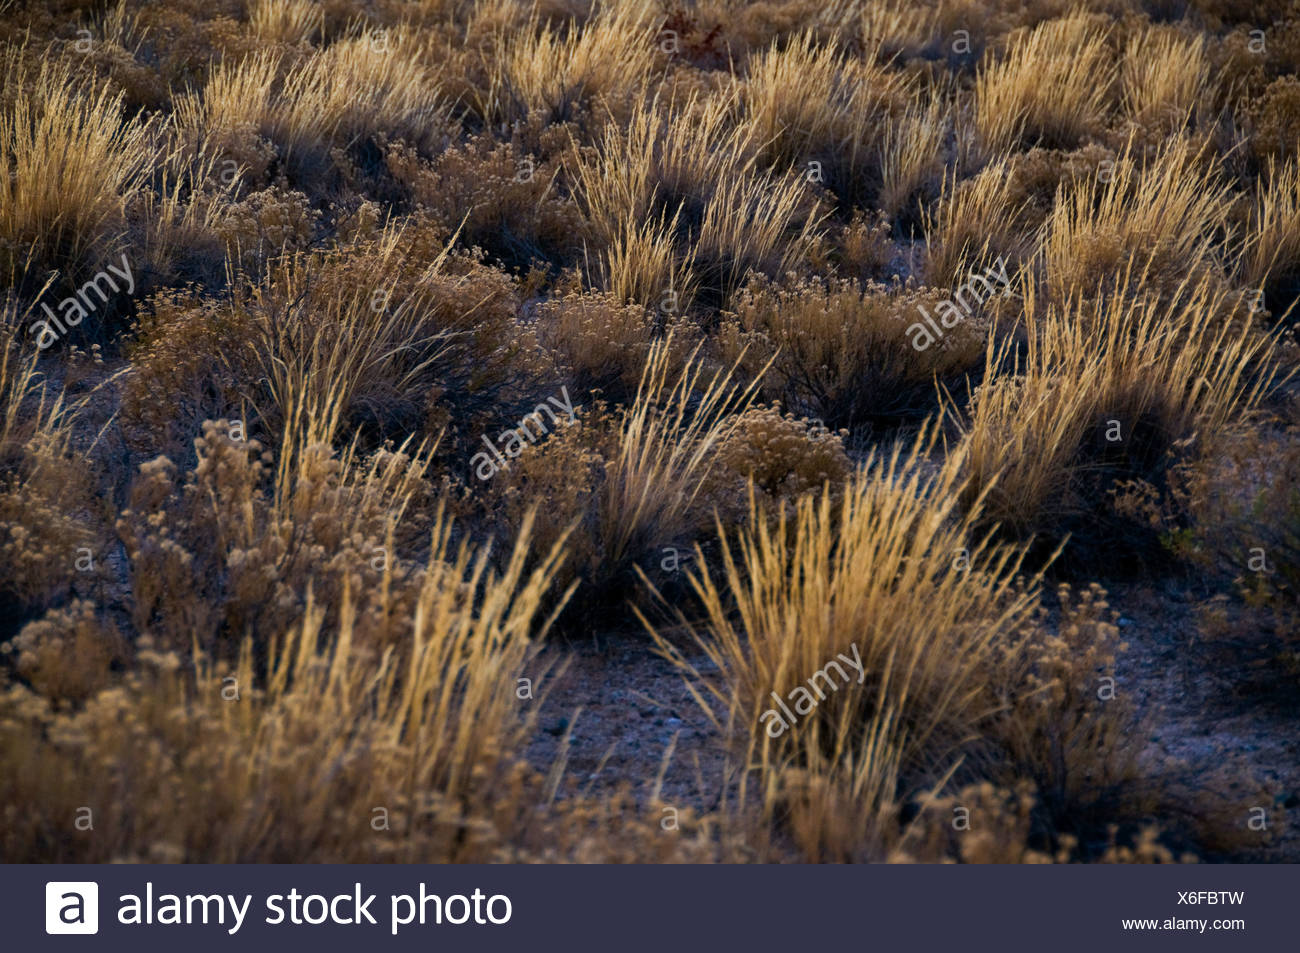 Plants on the ground of the Mojave desert, California, United States of America - Stock Image